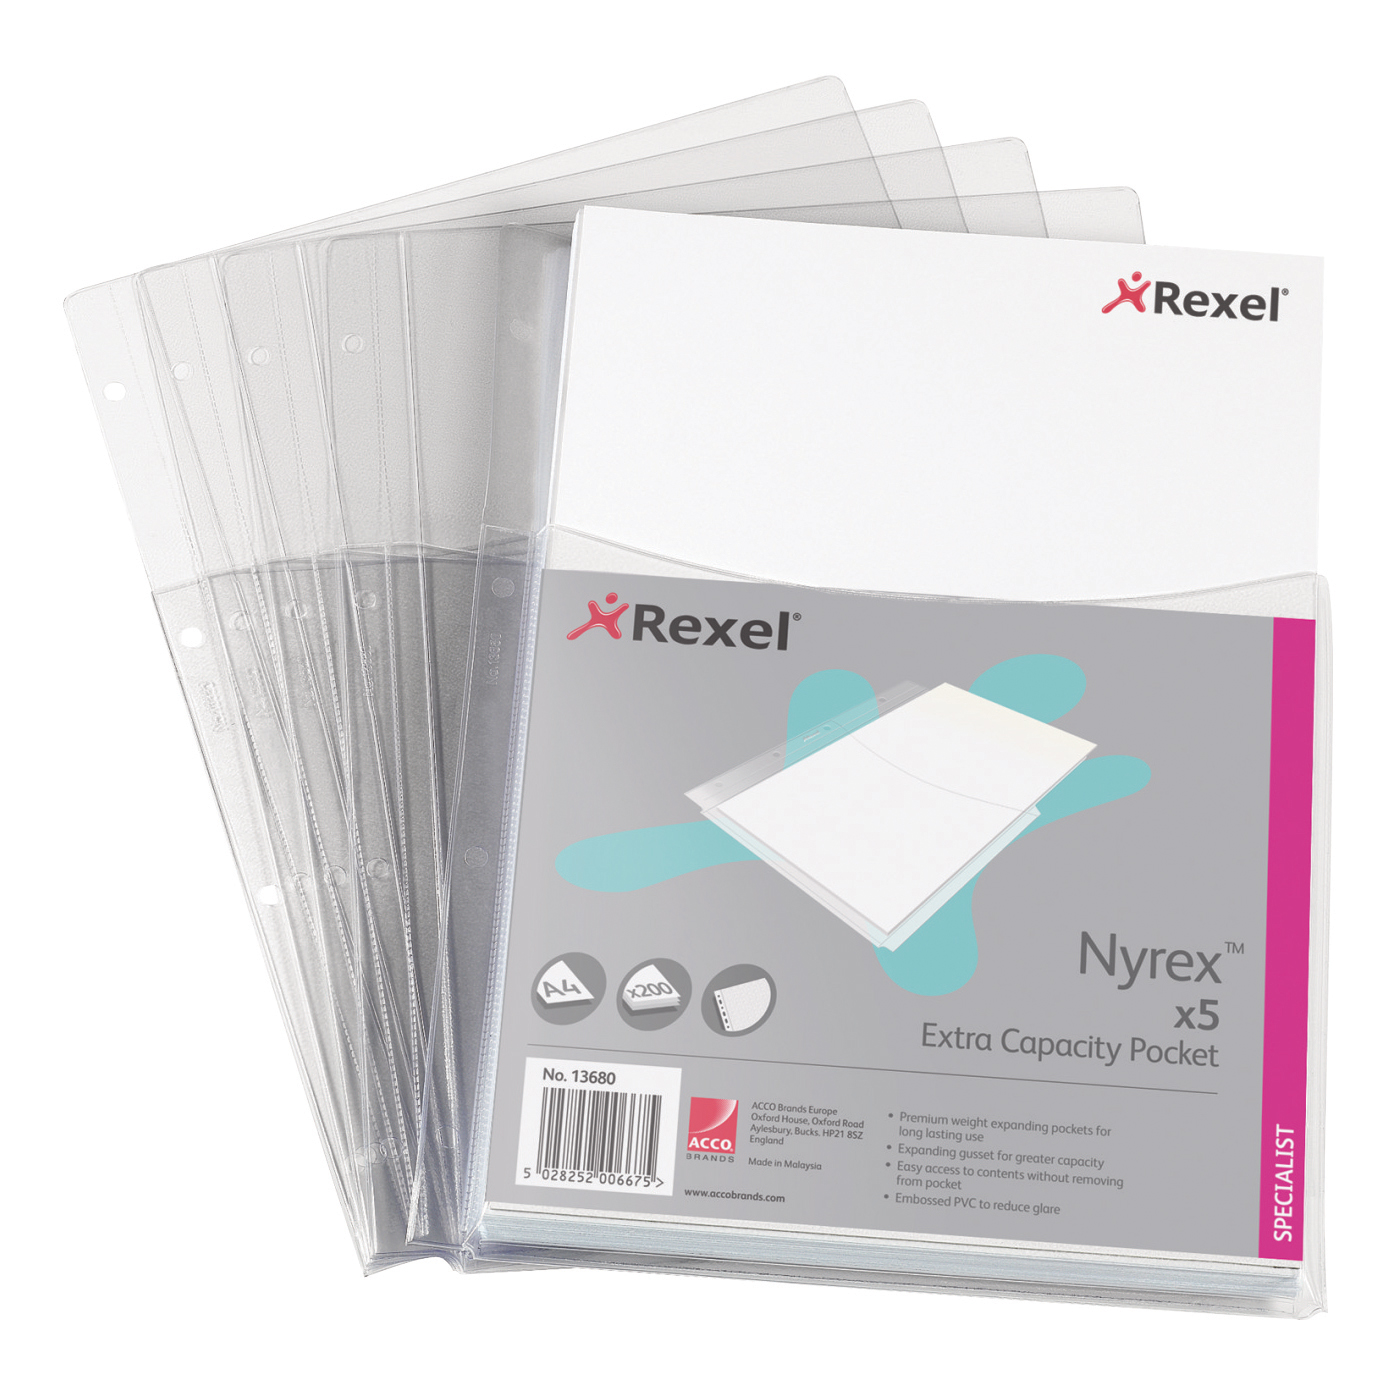 Rexel Nyrex Extra Capacity Pocket Punched PVC Half Size Top-opening 170 Micron A4 Ref 13680 [Pack 5]